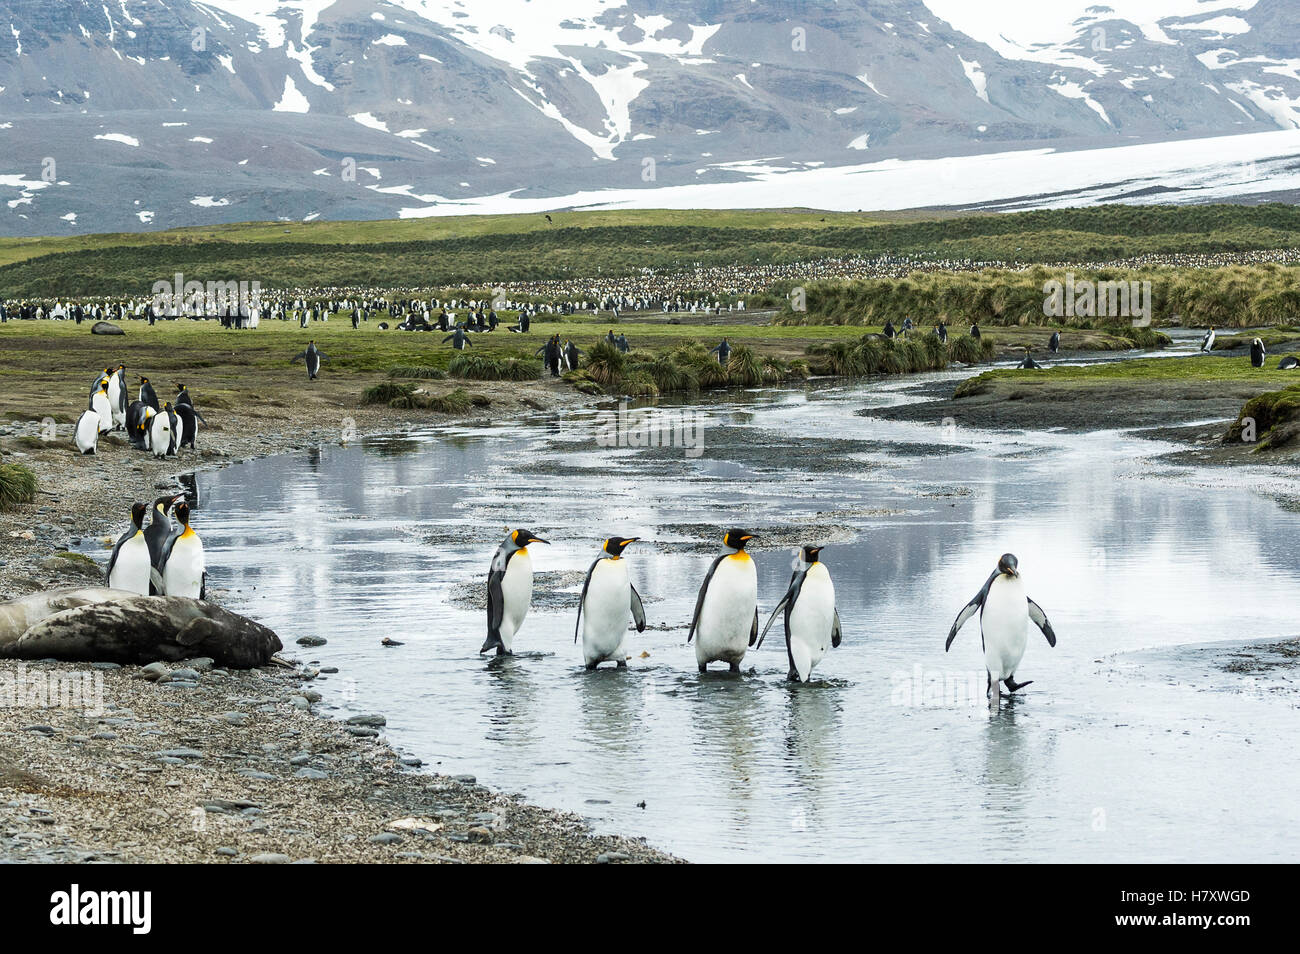 King penguins (Aptenodytes patagonicus) wading in shallow water; South Georgia, South Georgia and the South Sandwich - Stock Image